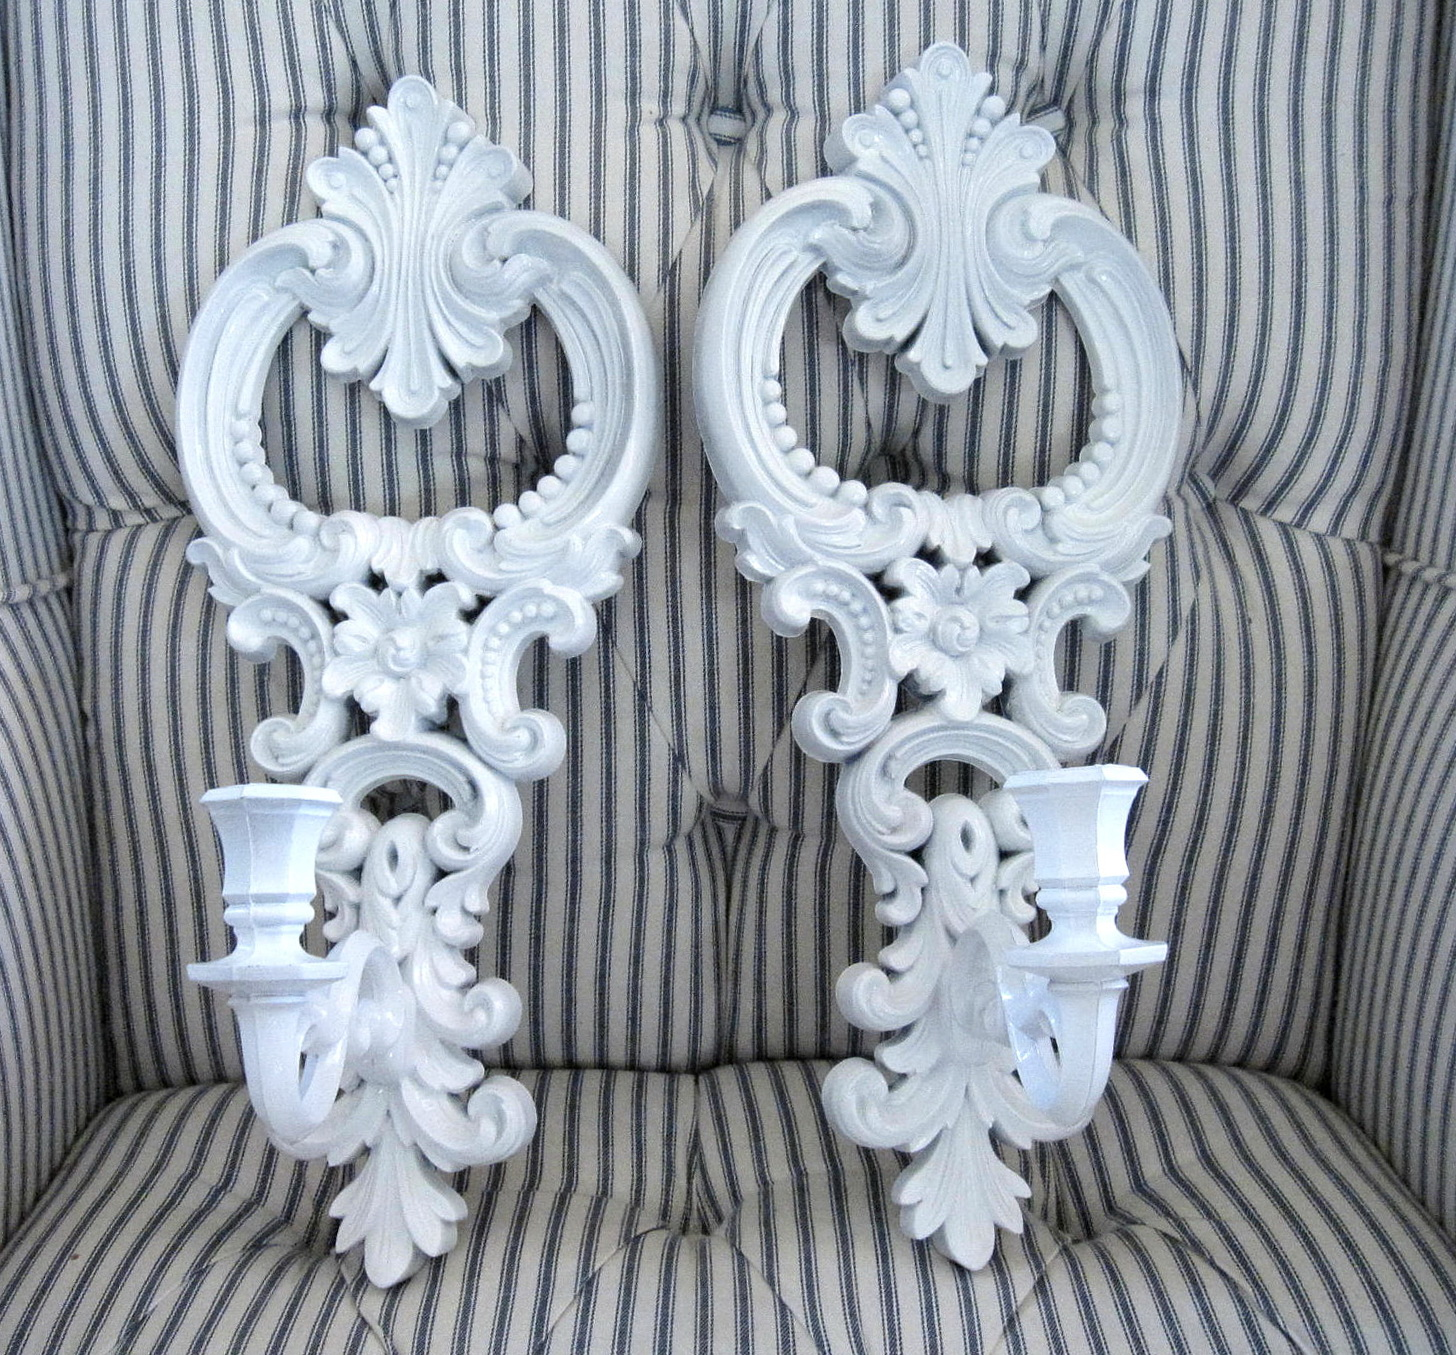 Permalink to White Wall Sconce Candle Holders